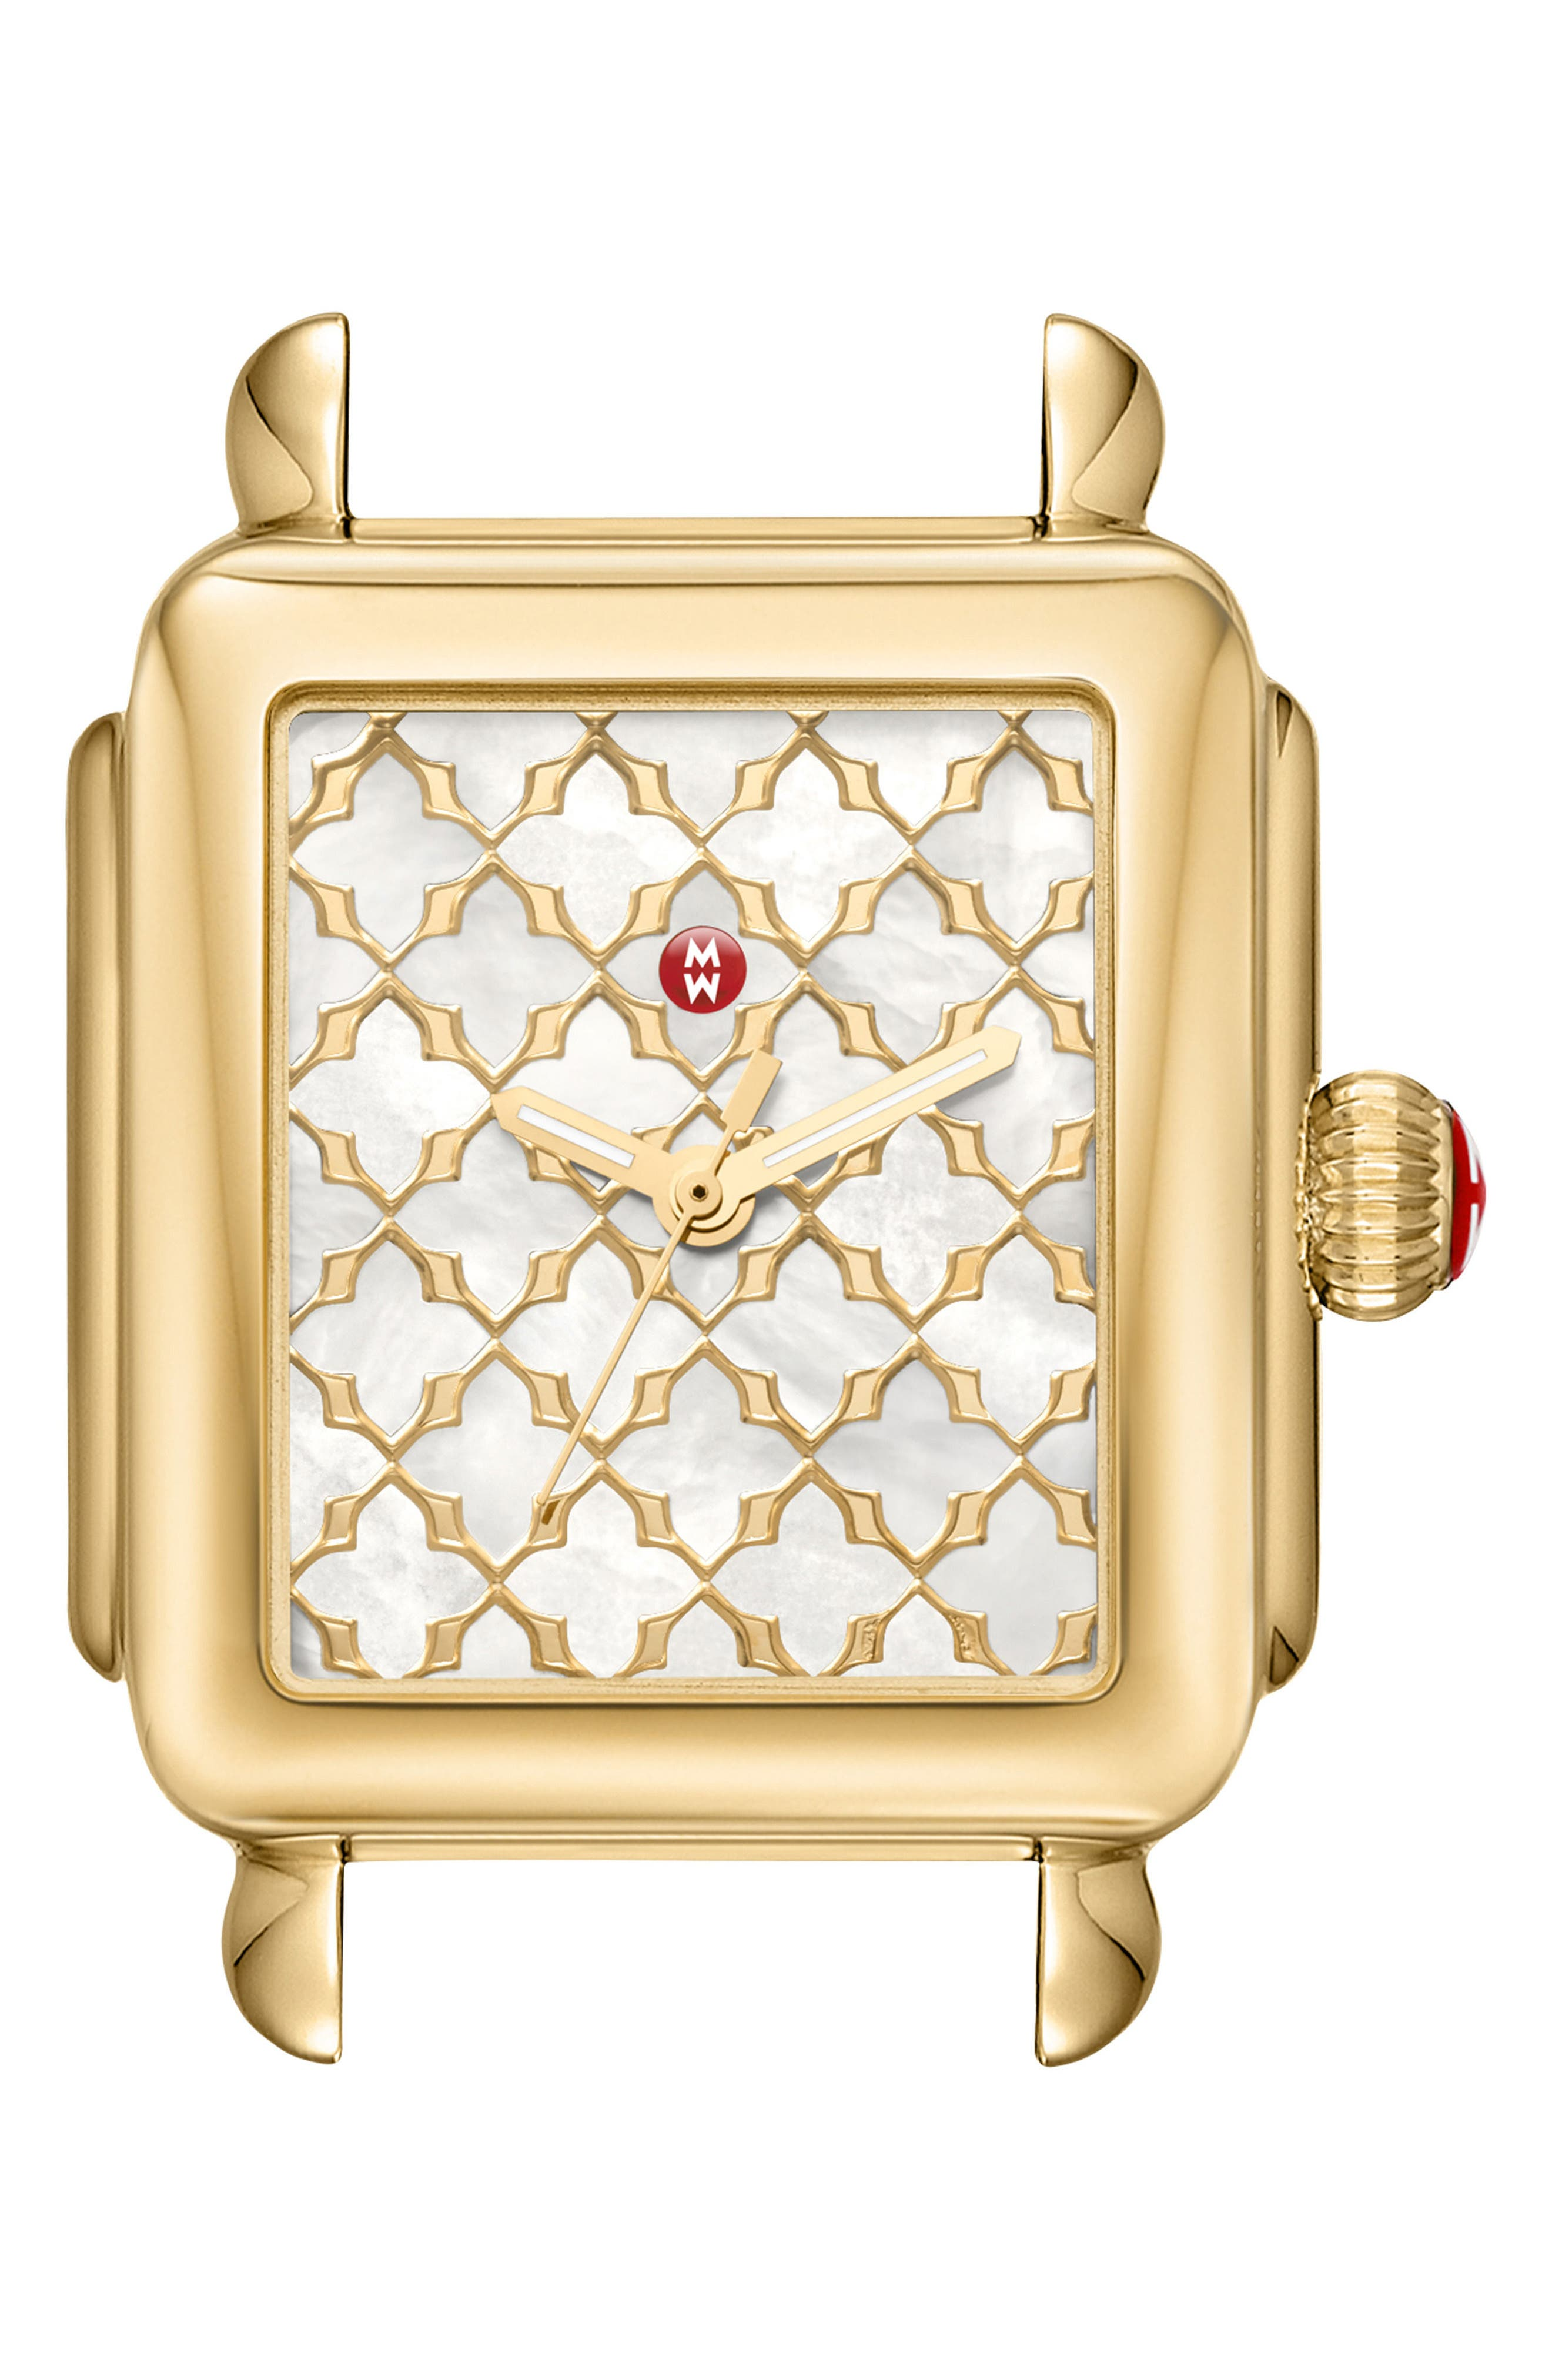 MICHELE Deco Mosaic Square Watch Head, 33Mm X 35Mm in Gold/ Mop